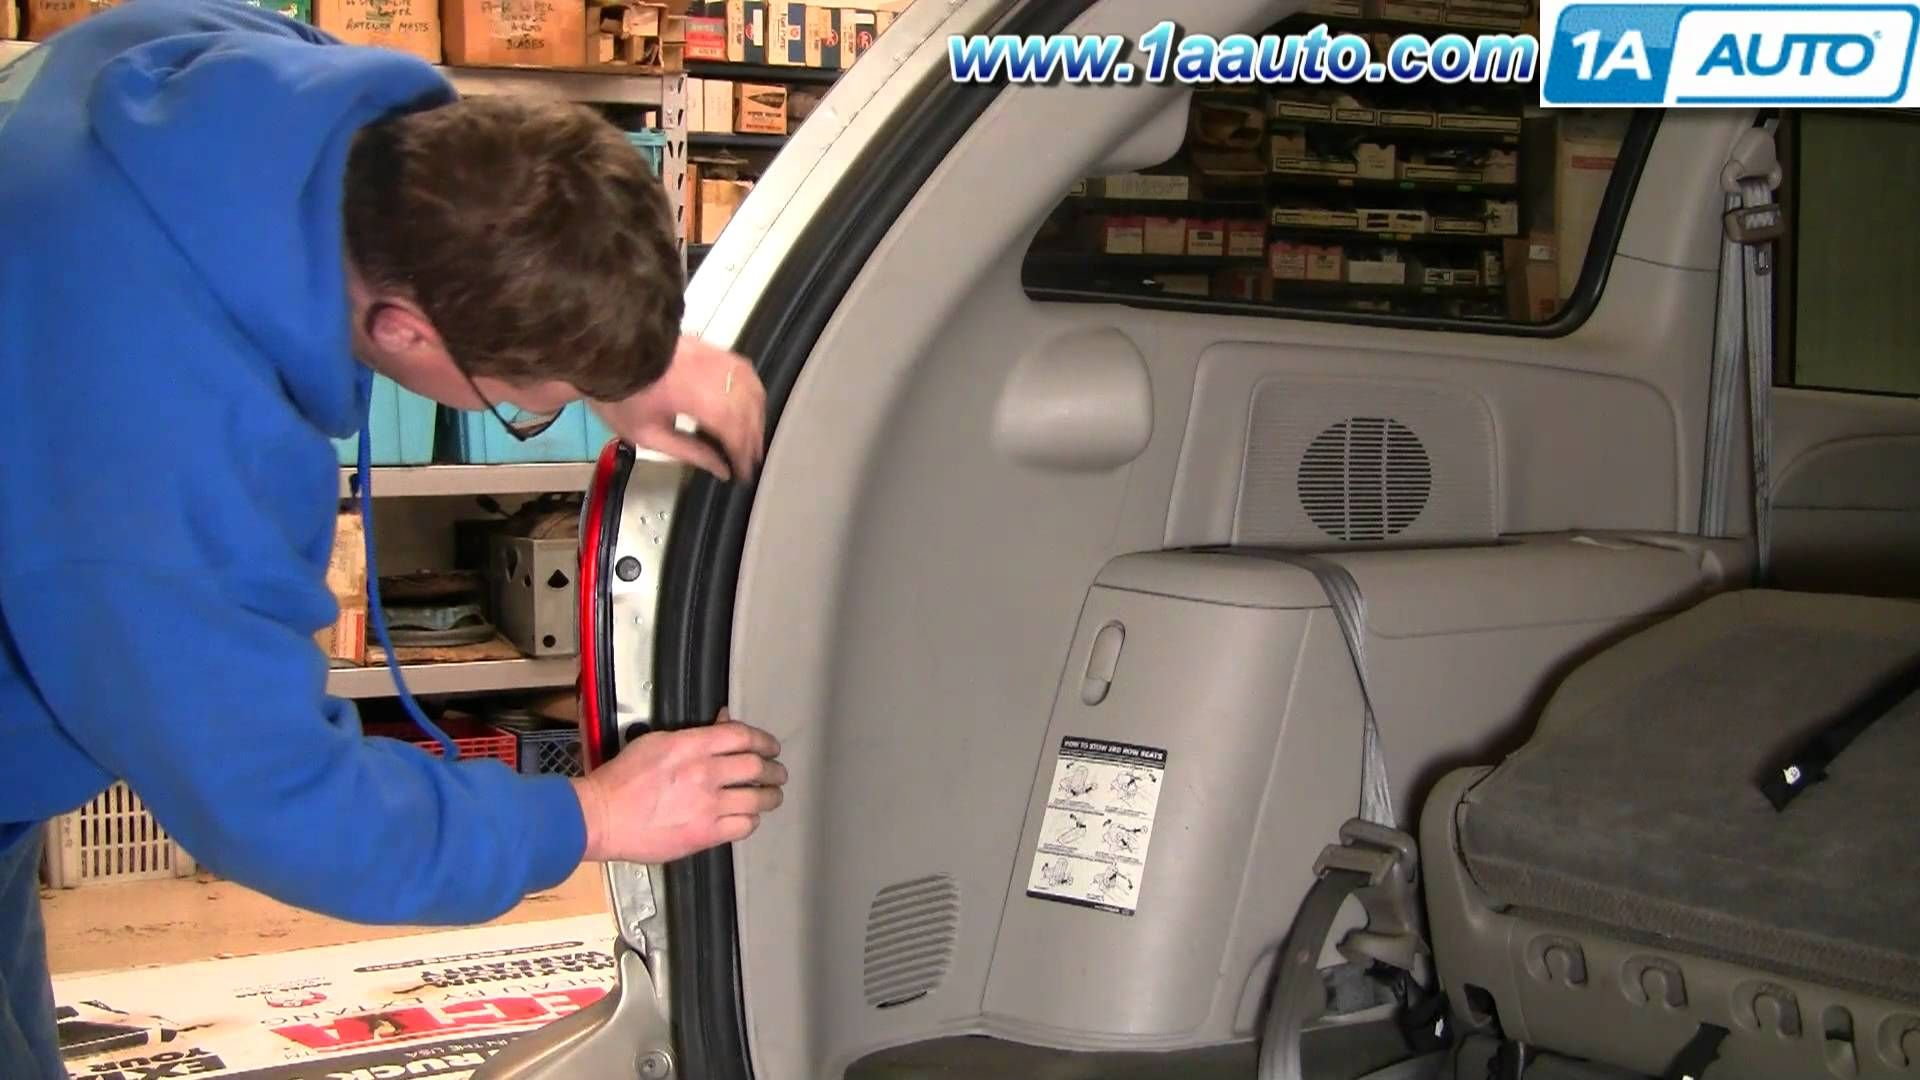 How to install replace rear power vent window motor chrysler dodge how to install replace rear power vent window motor chrysler dodge carav fandeluxe Image collections